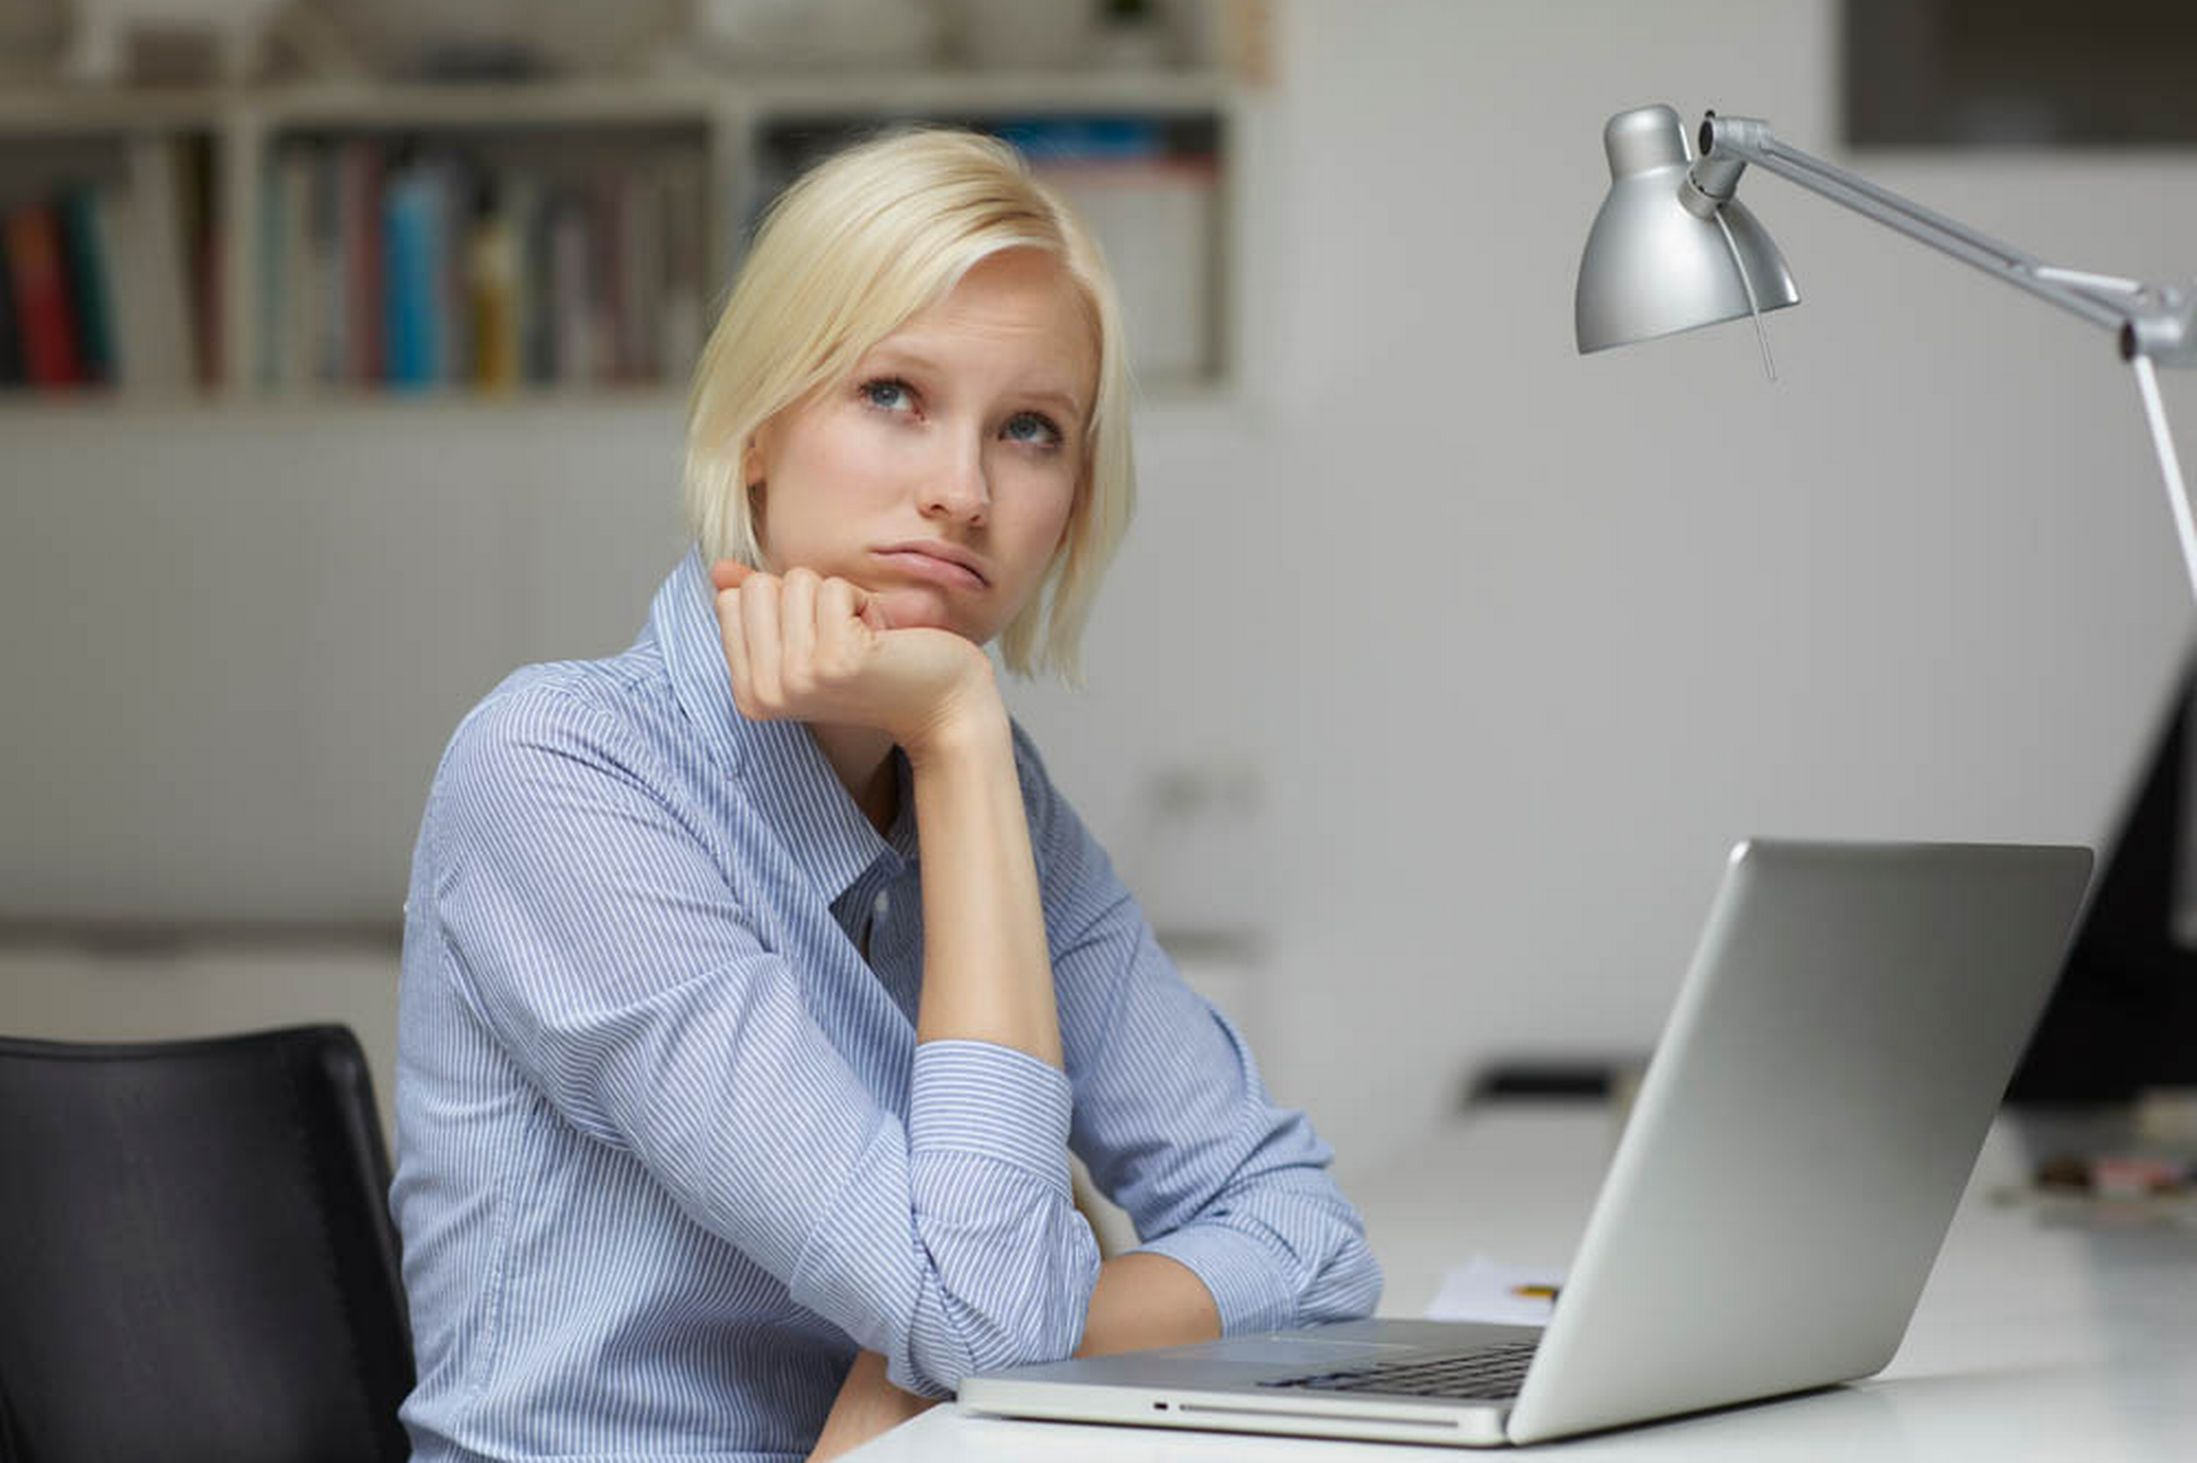 women-in-office-looking-tired